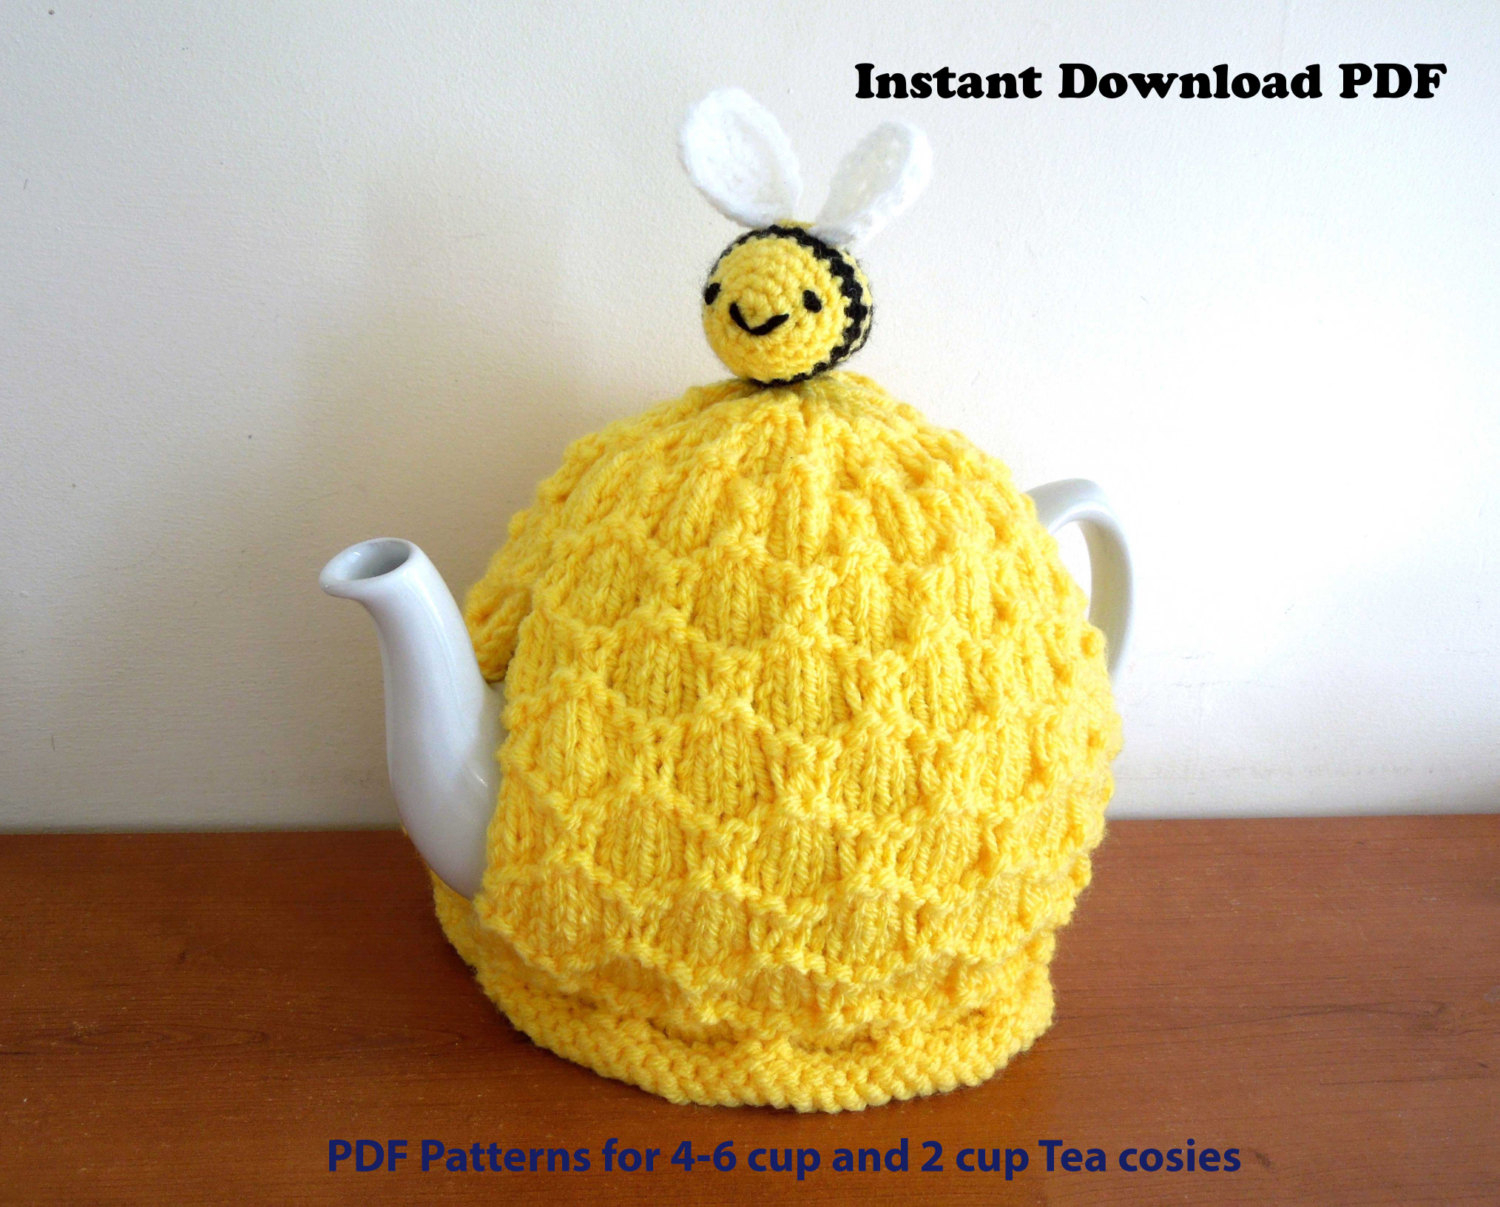 Patterns For Knitted Tea Cosies Beehive Tea Cosy Knitting Digital Pattern Only For 4 6 Cup 2 Pt 40 Fl Oz Standard Teapot And Small 2 Cup 450ml Teapot Bee Pattern